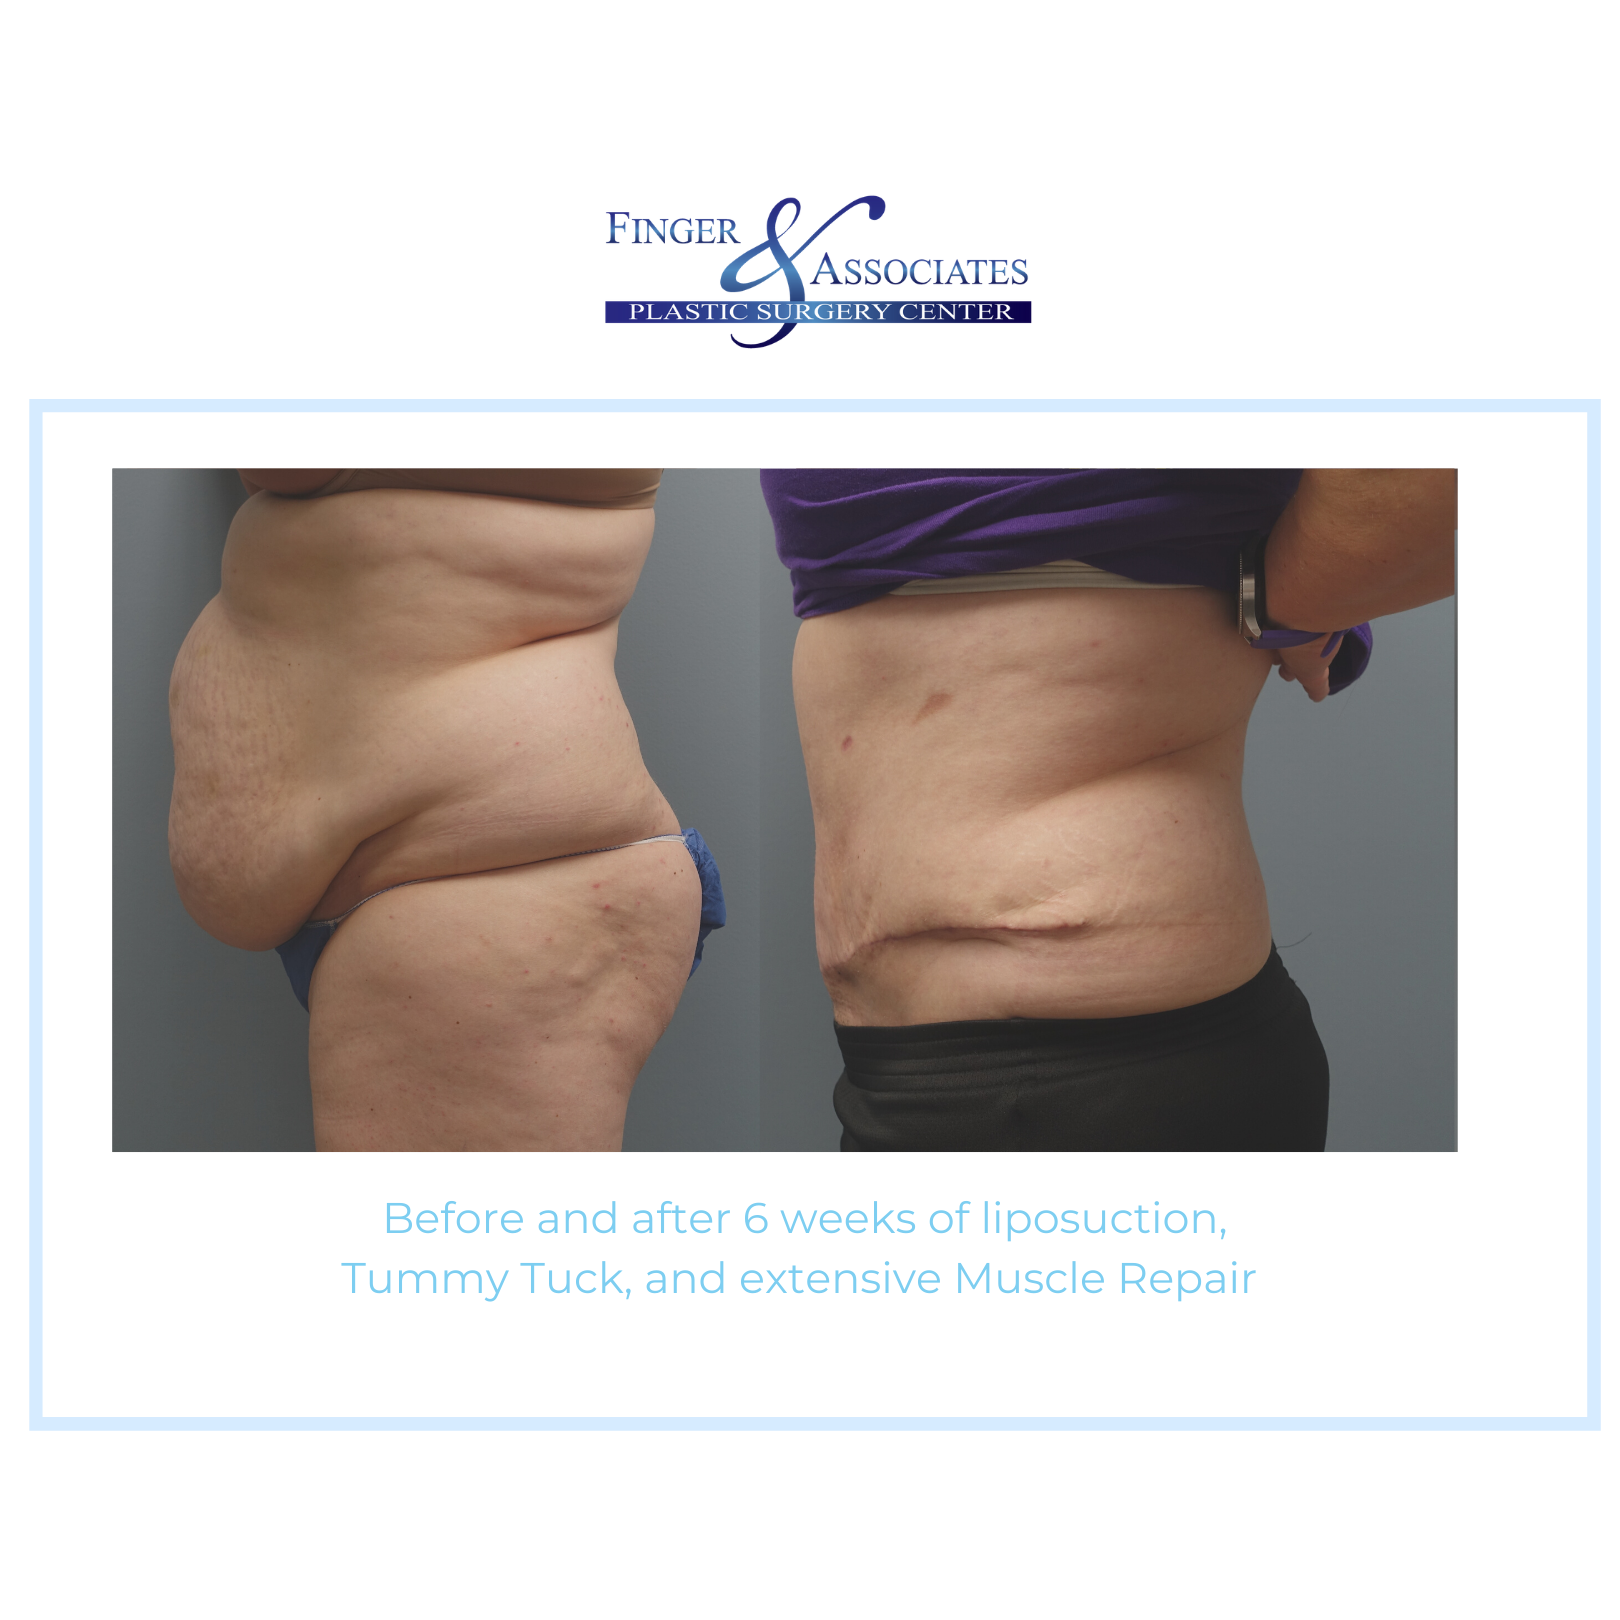 tummy tuck and lipo + muscle repair